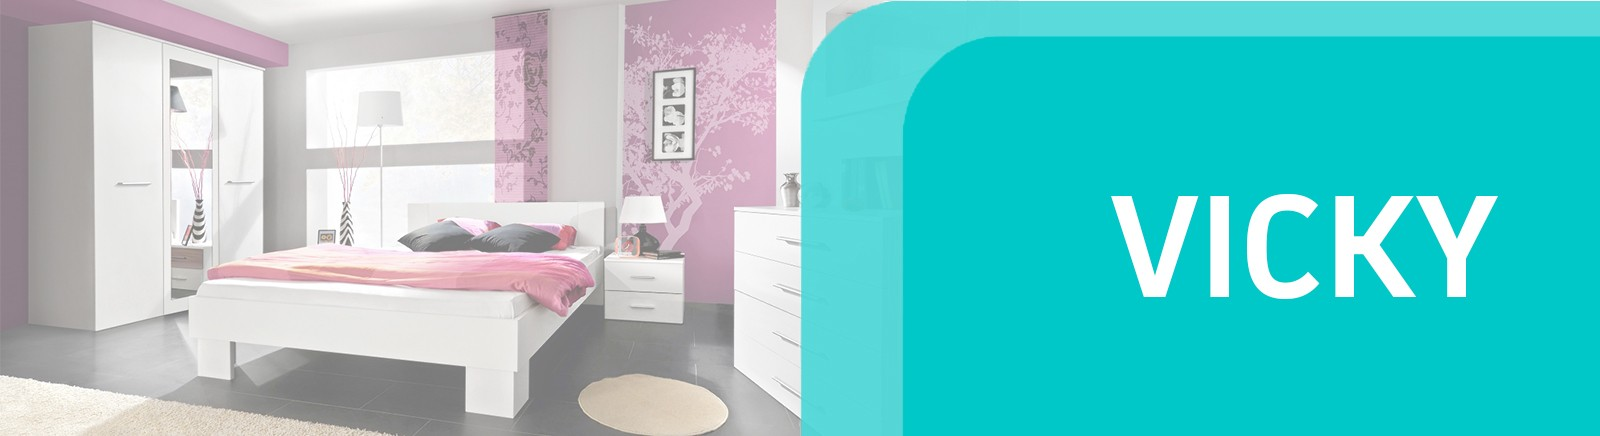 Vicky bedroom furniture